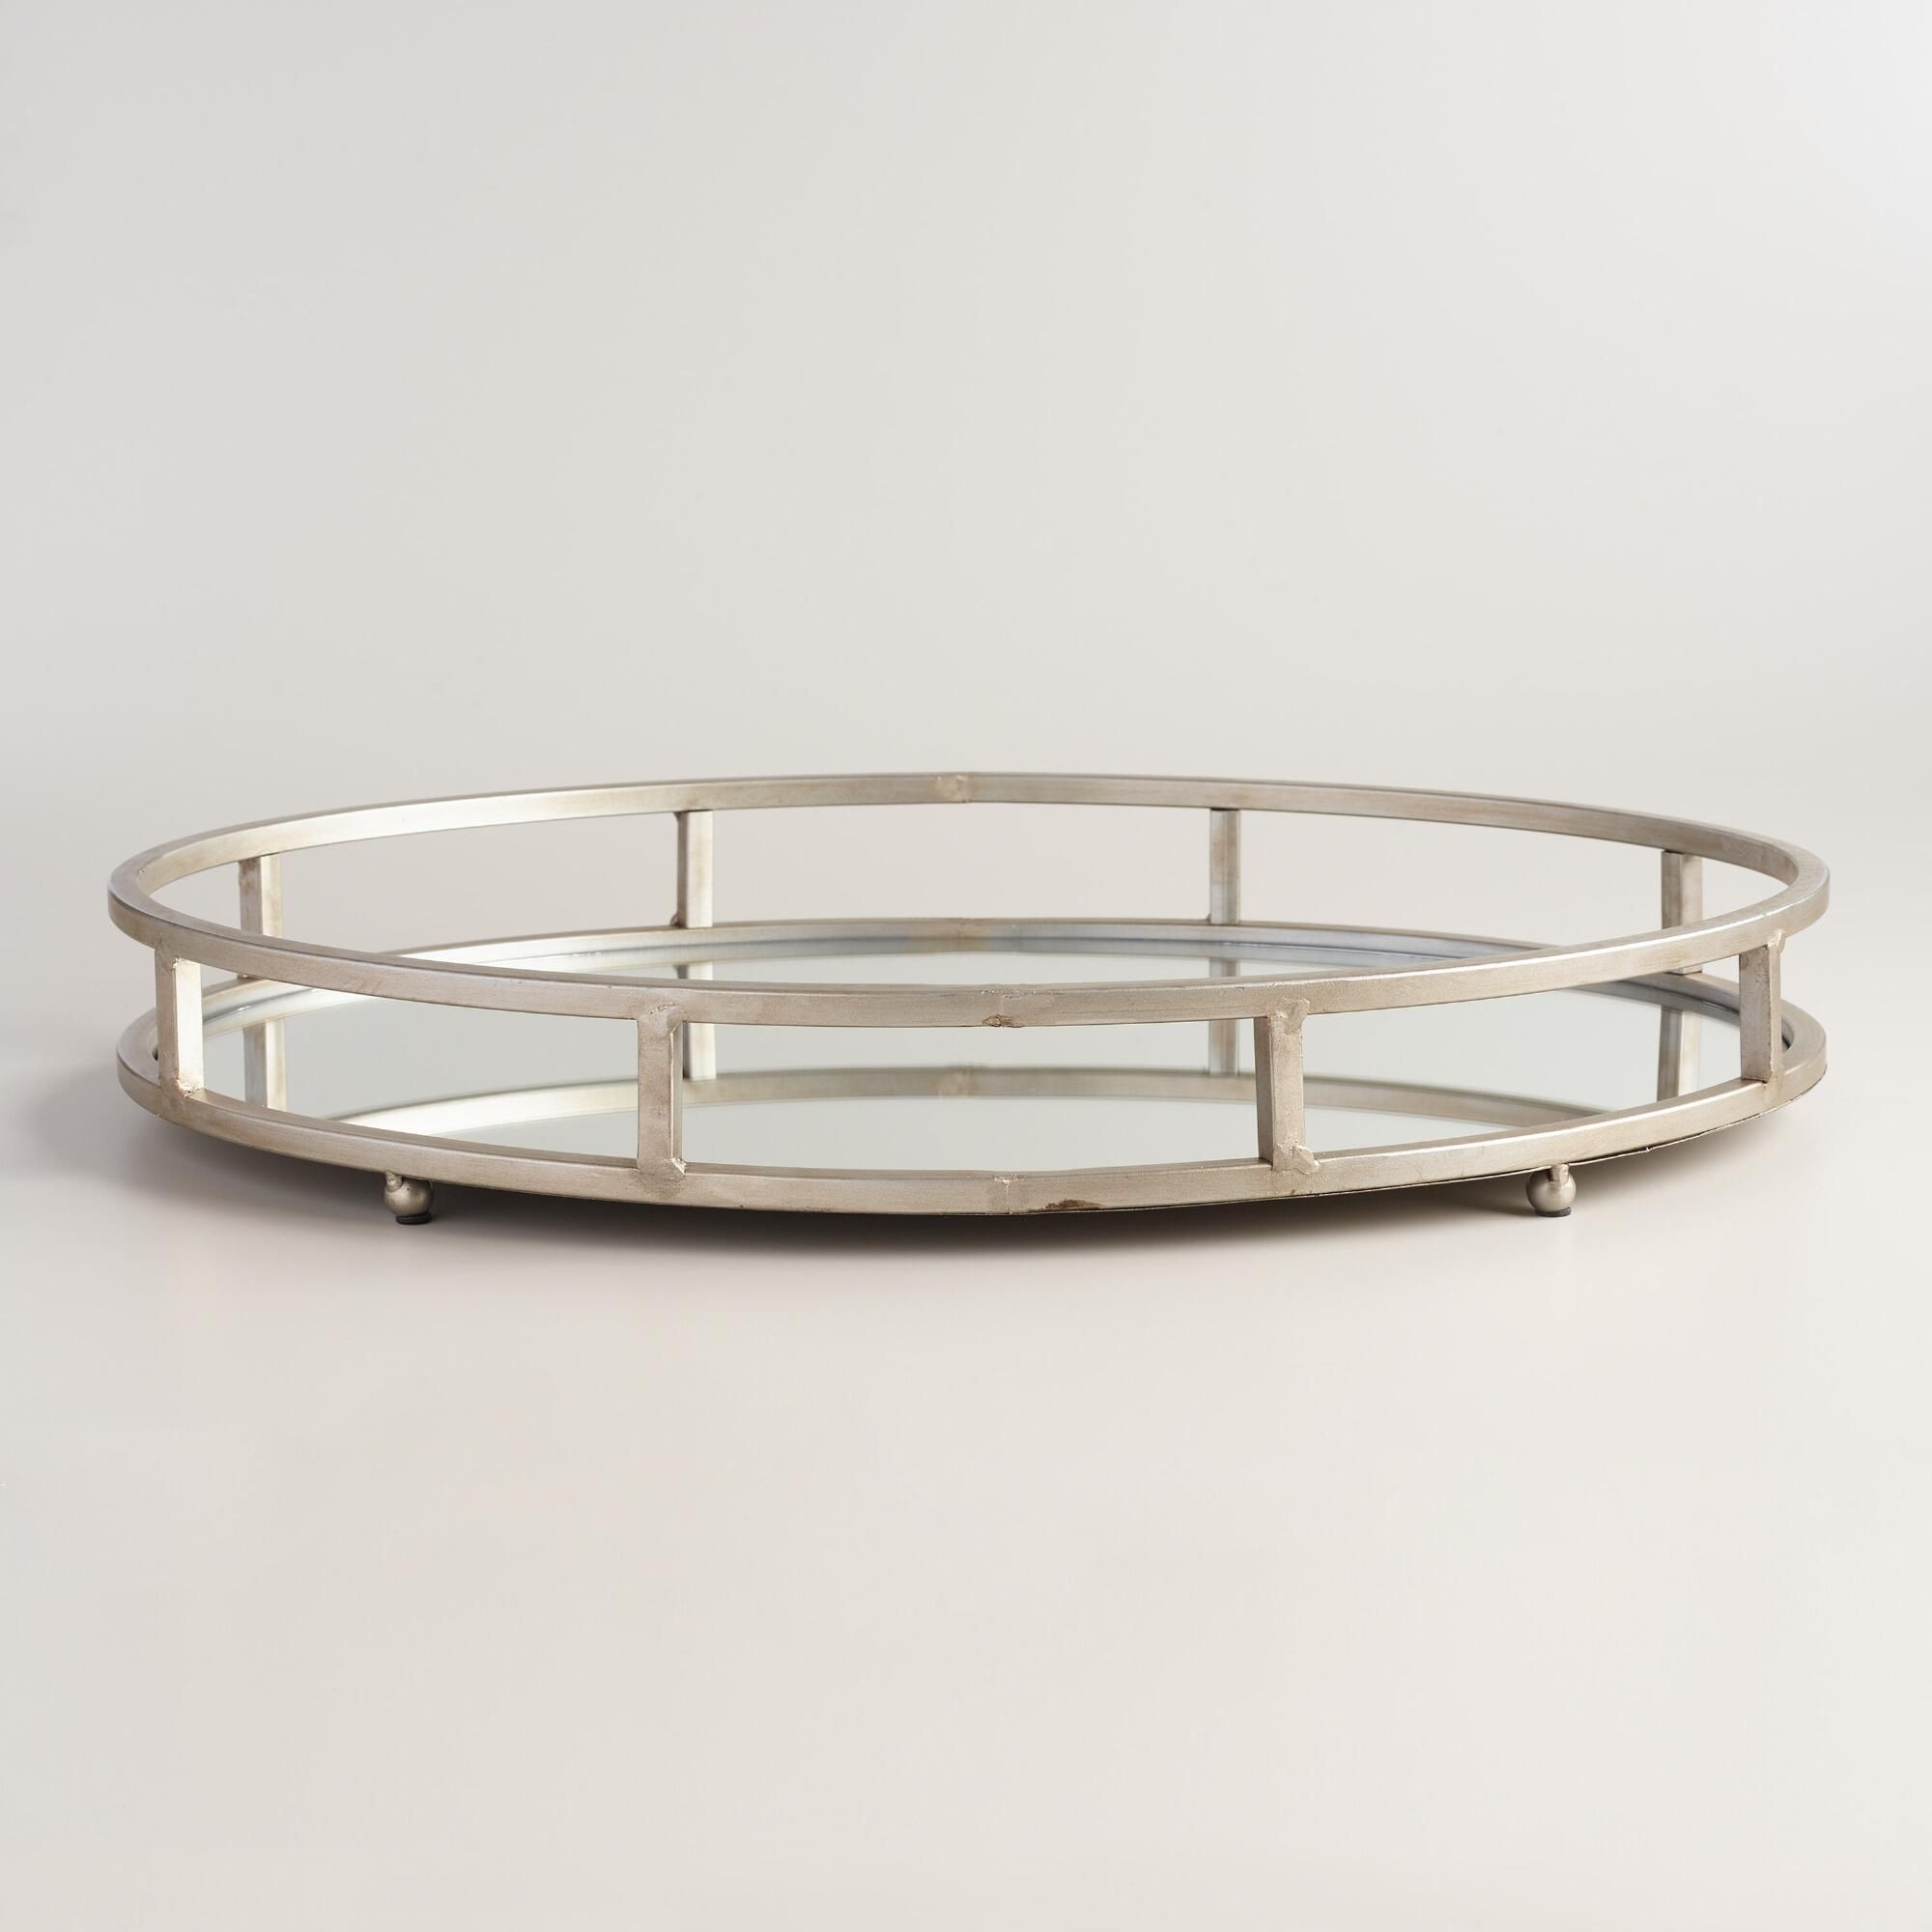 Silver Mirrored Round Serving Tray Mirrored Serving Tray Mirror Tray Tray